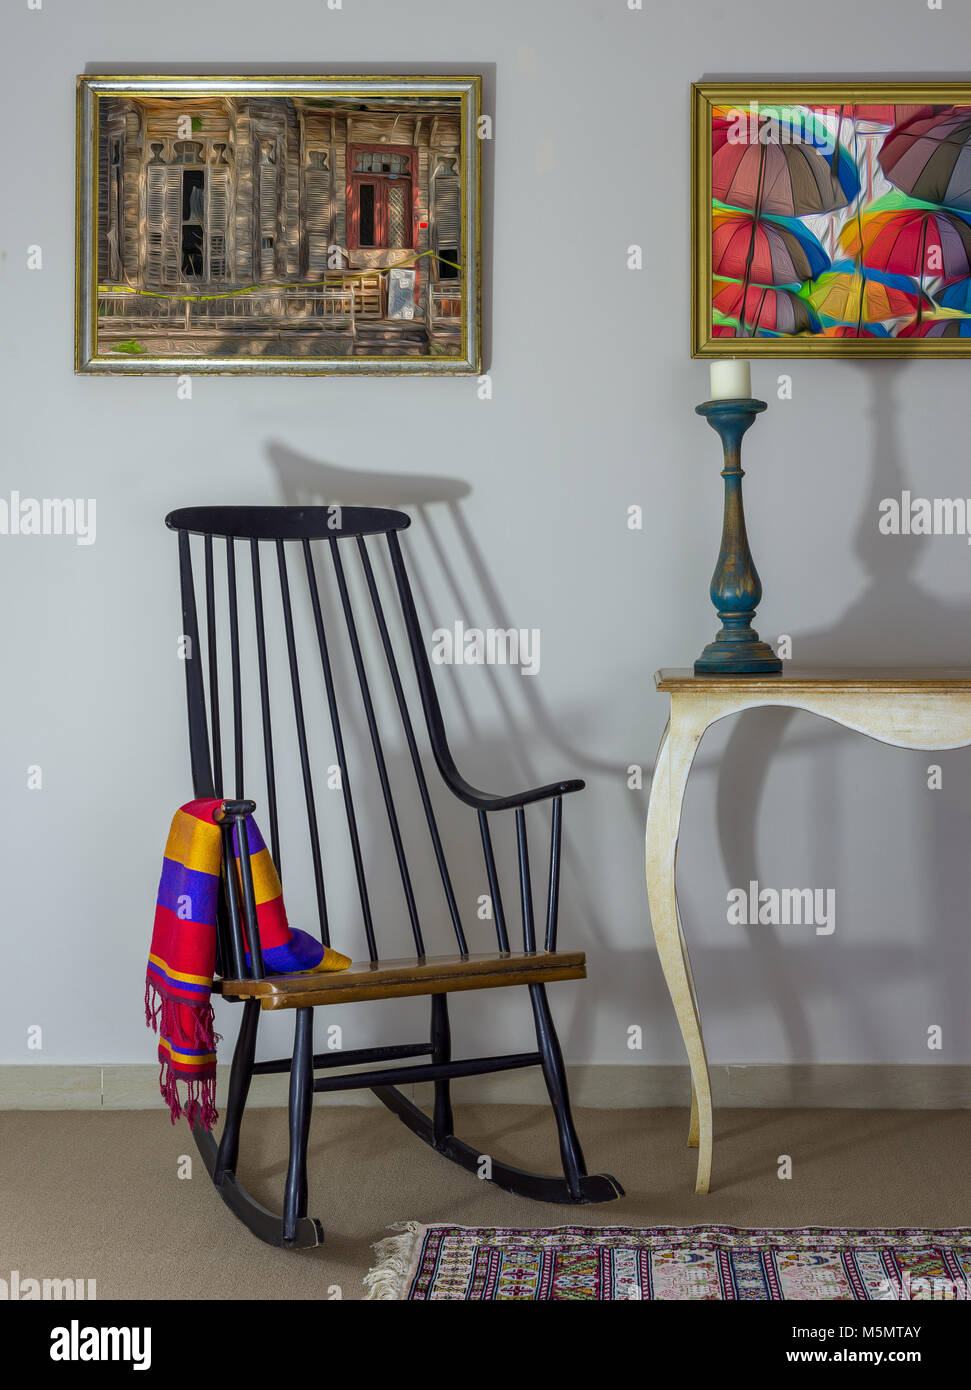 Interior shot of vintage rocking chair, old style table, candlestick on background of off white wall with two hanged - Stock Image